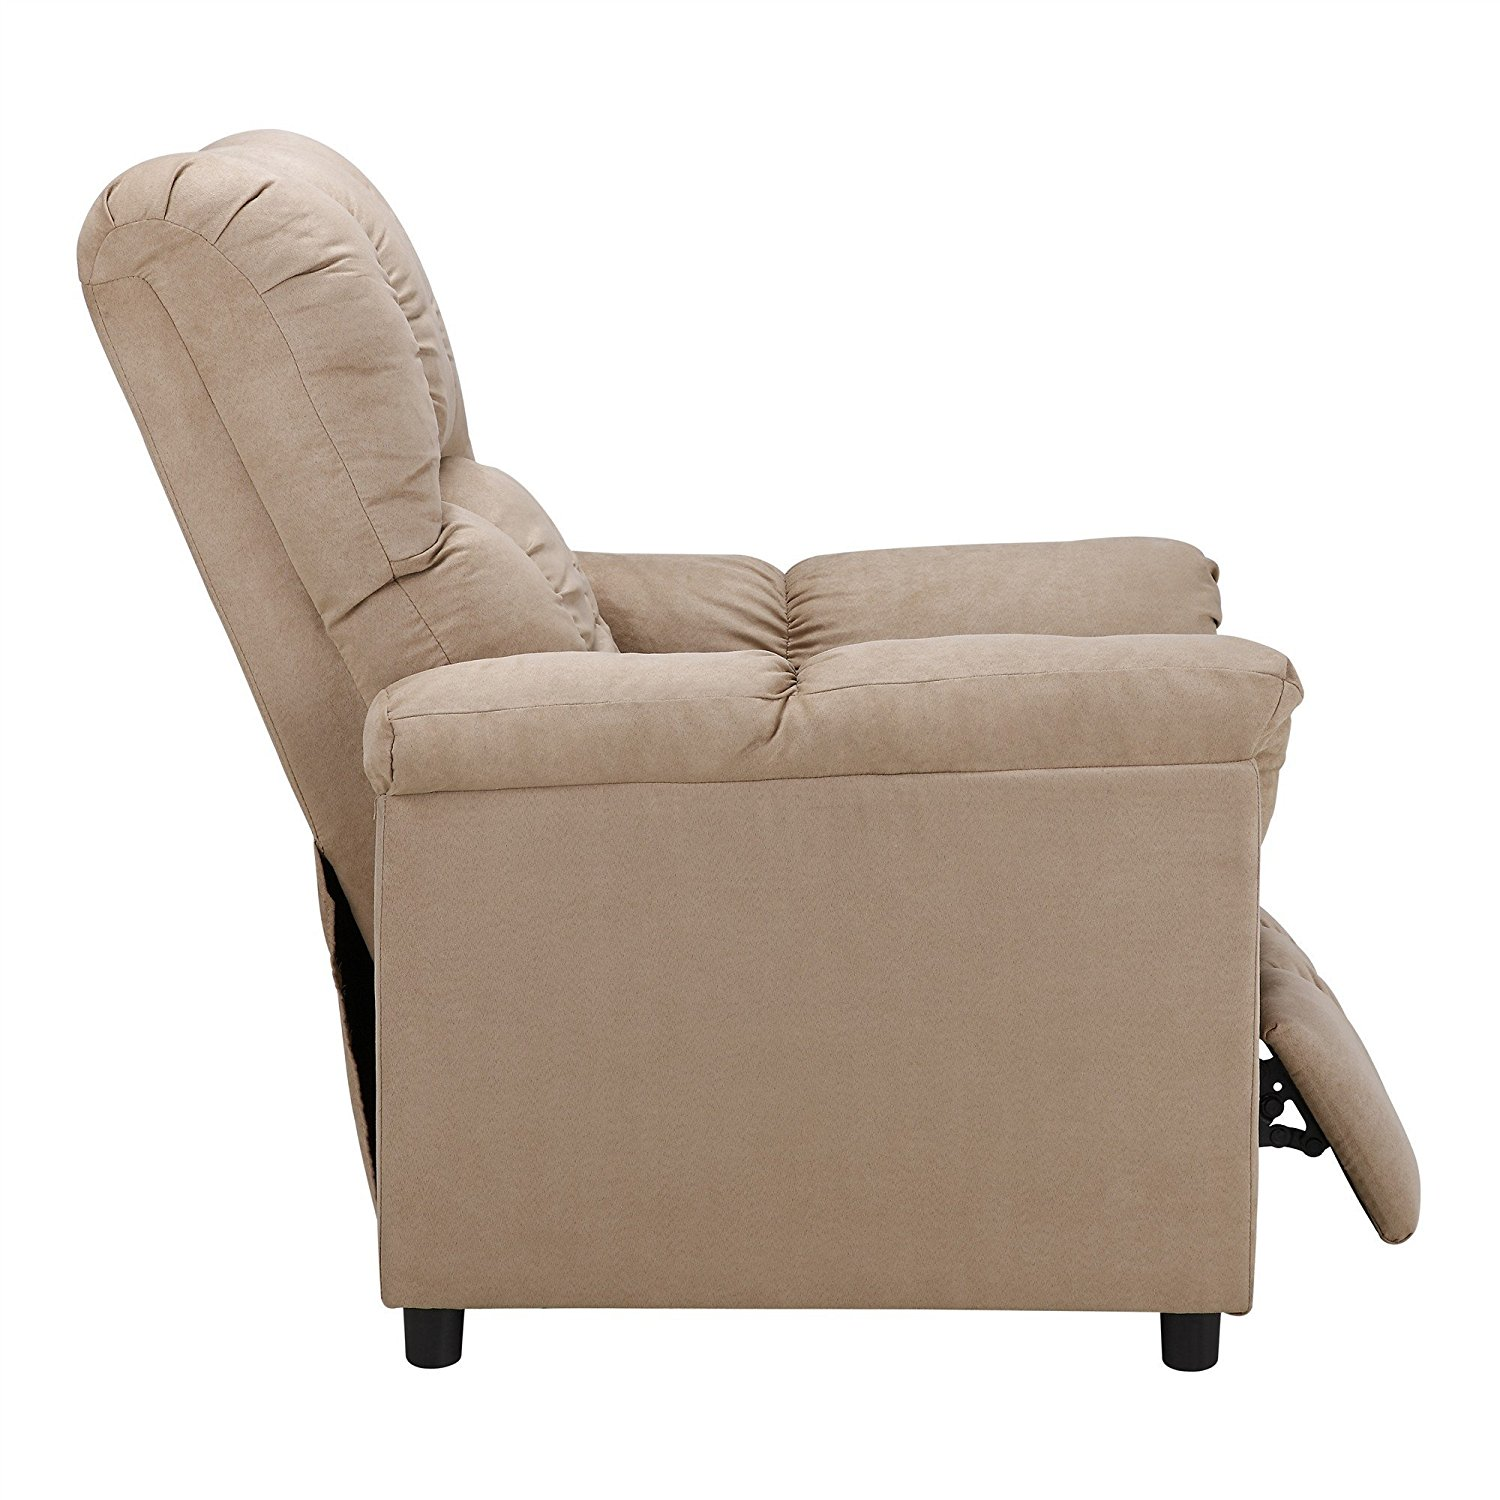 Recliners for Short People Recliner Time : recliners for short people from reclinertime.com size 1500 x 1500 jpeg 220kB